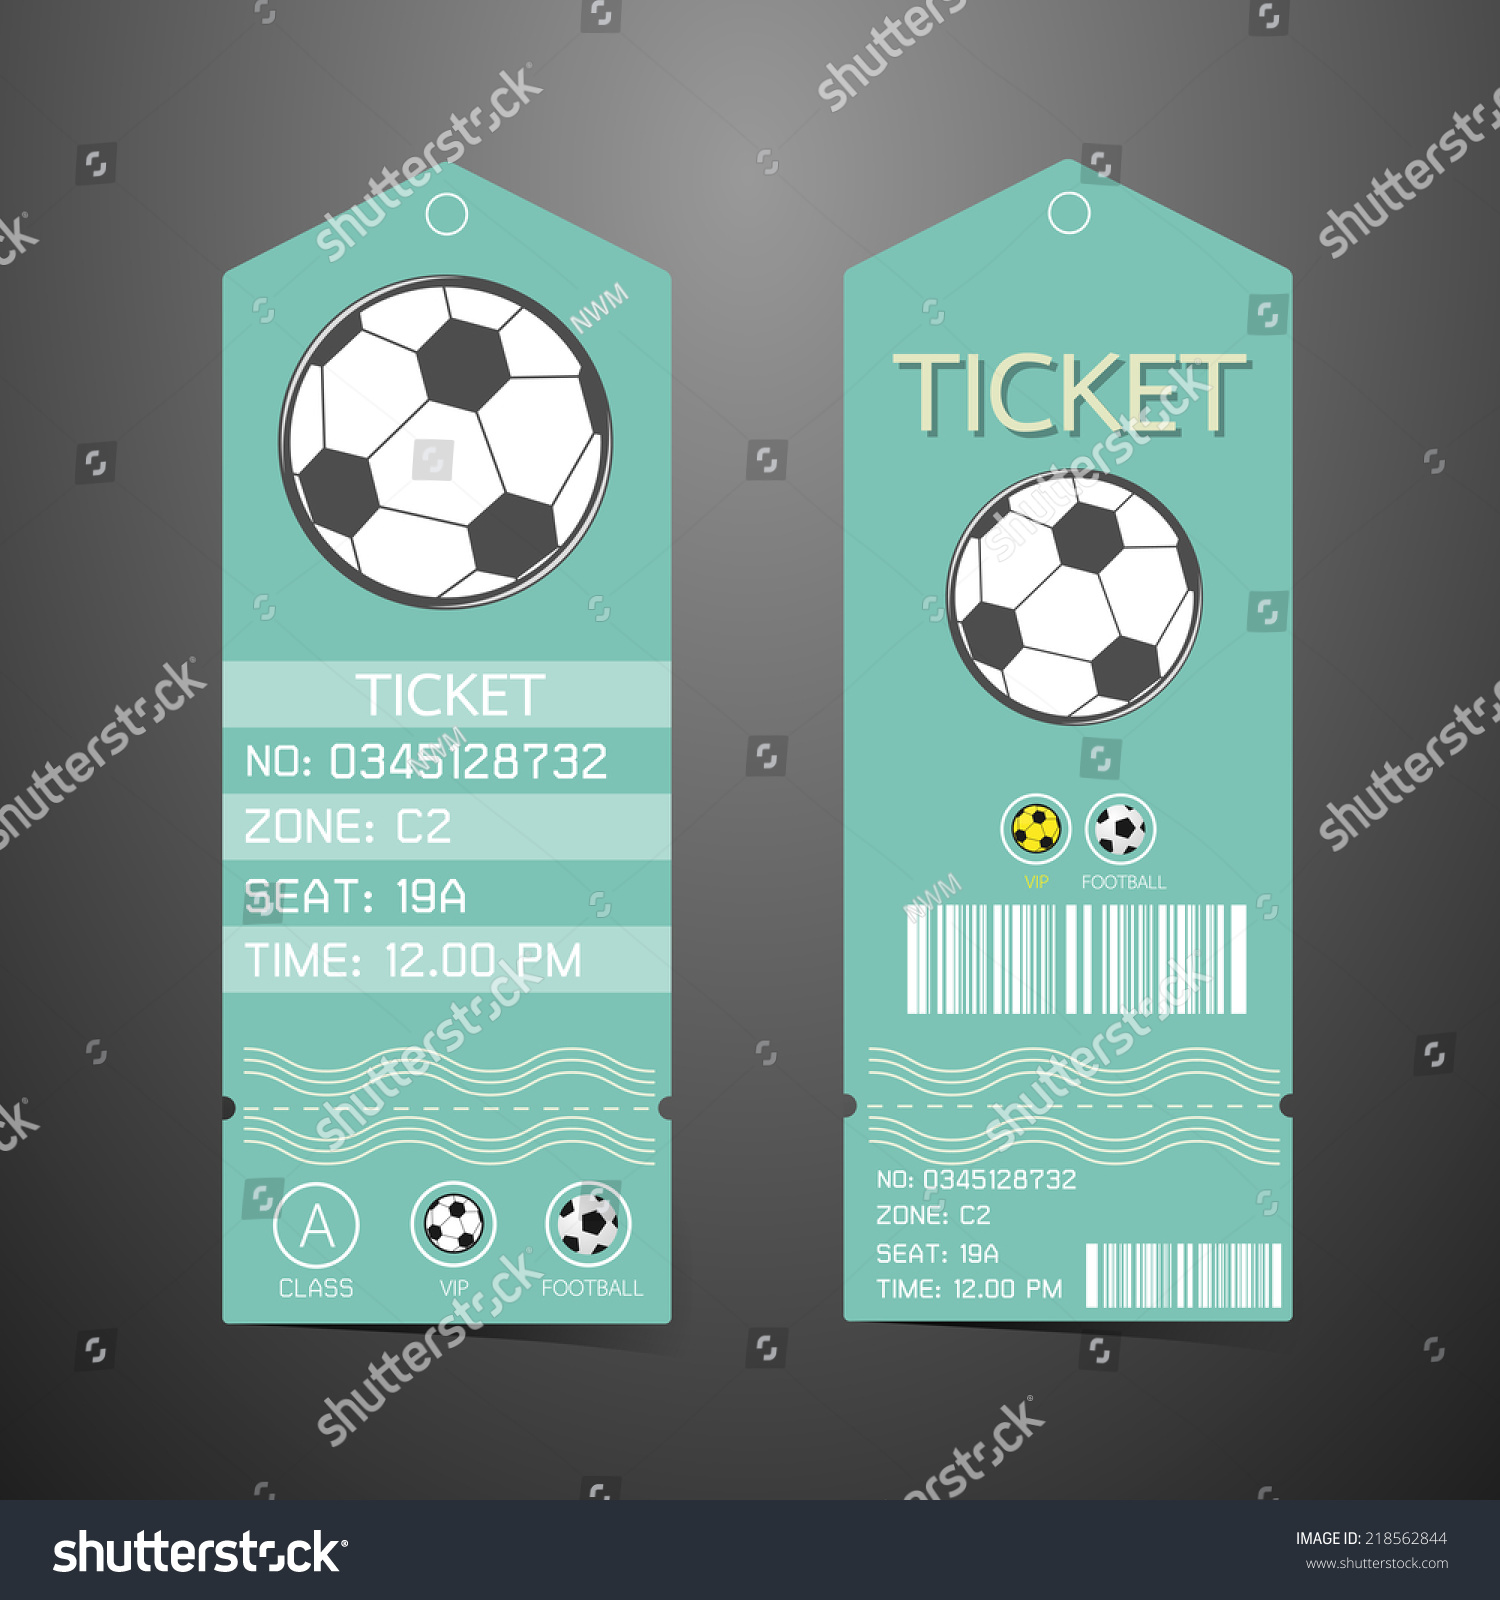 Ticket Design Template Concept Football Vector 218562844 – Ticket Design Template